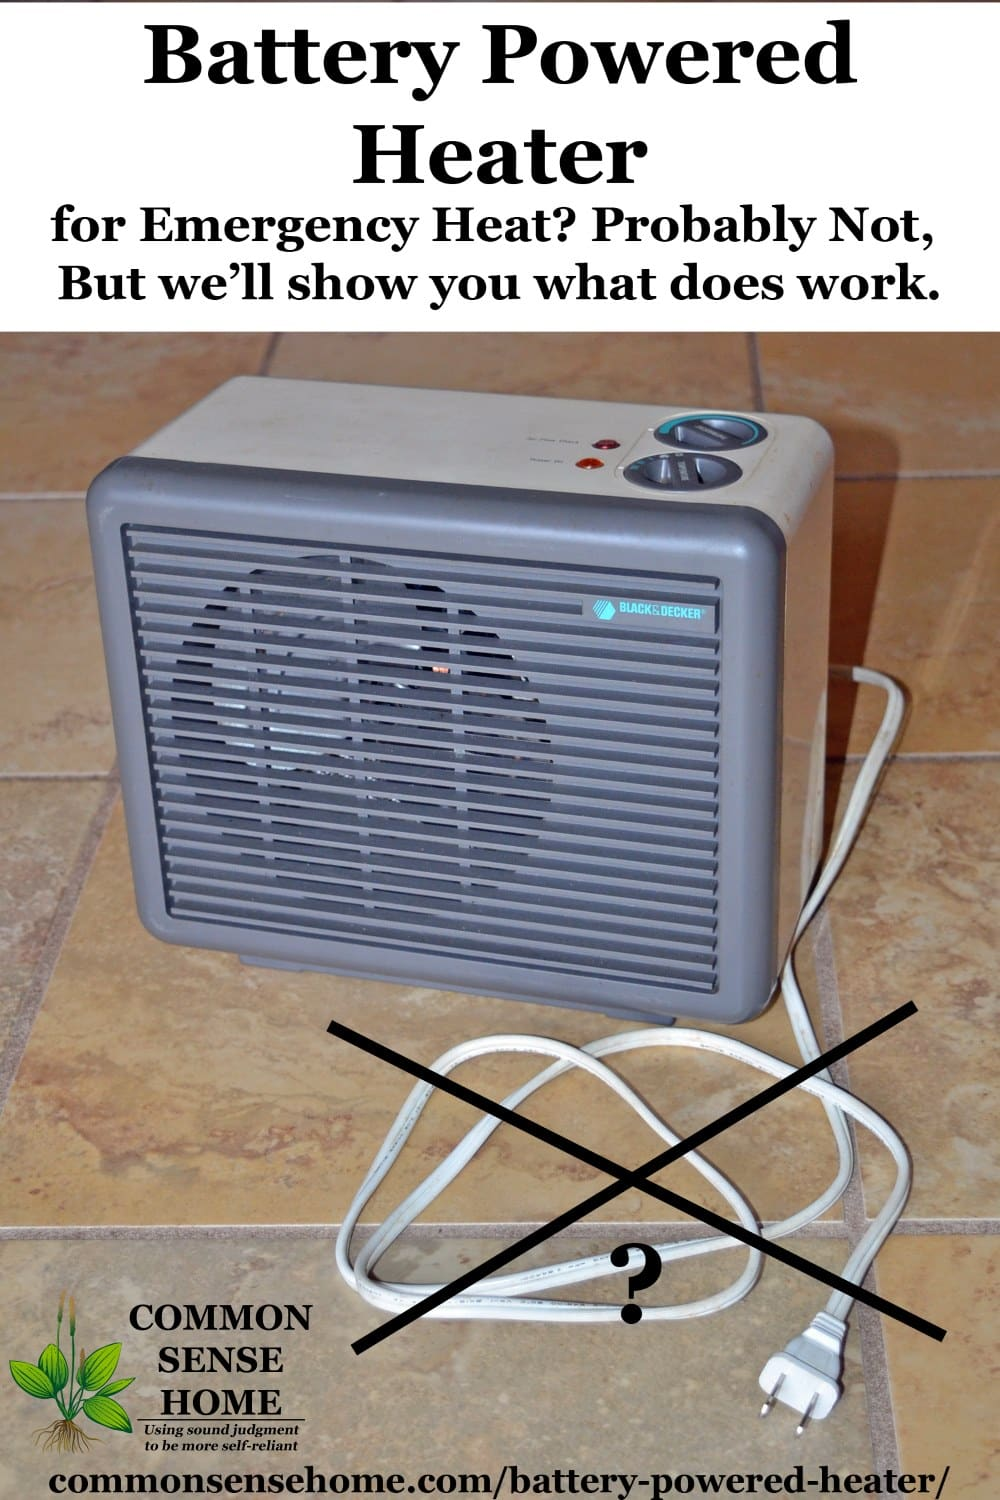 not a battery powered heater